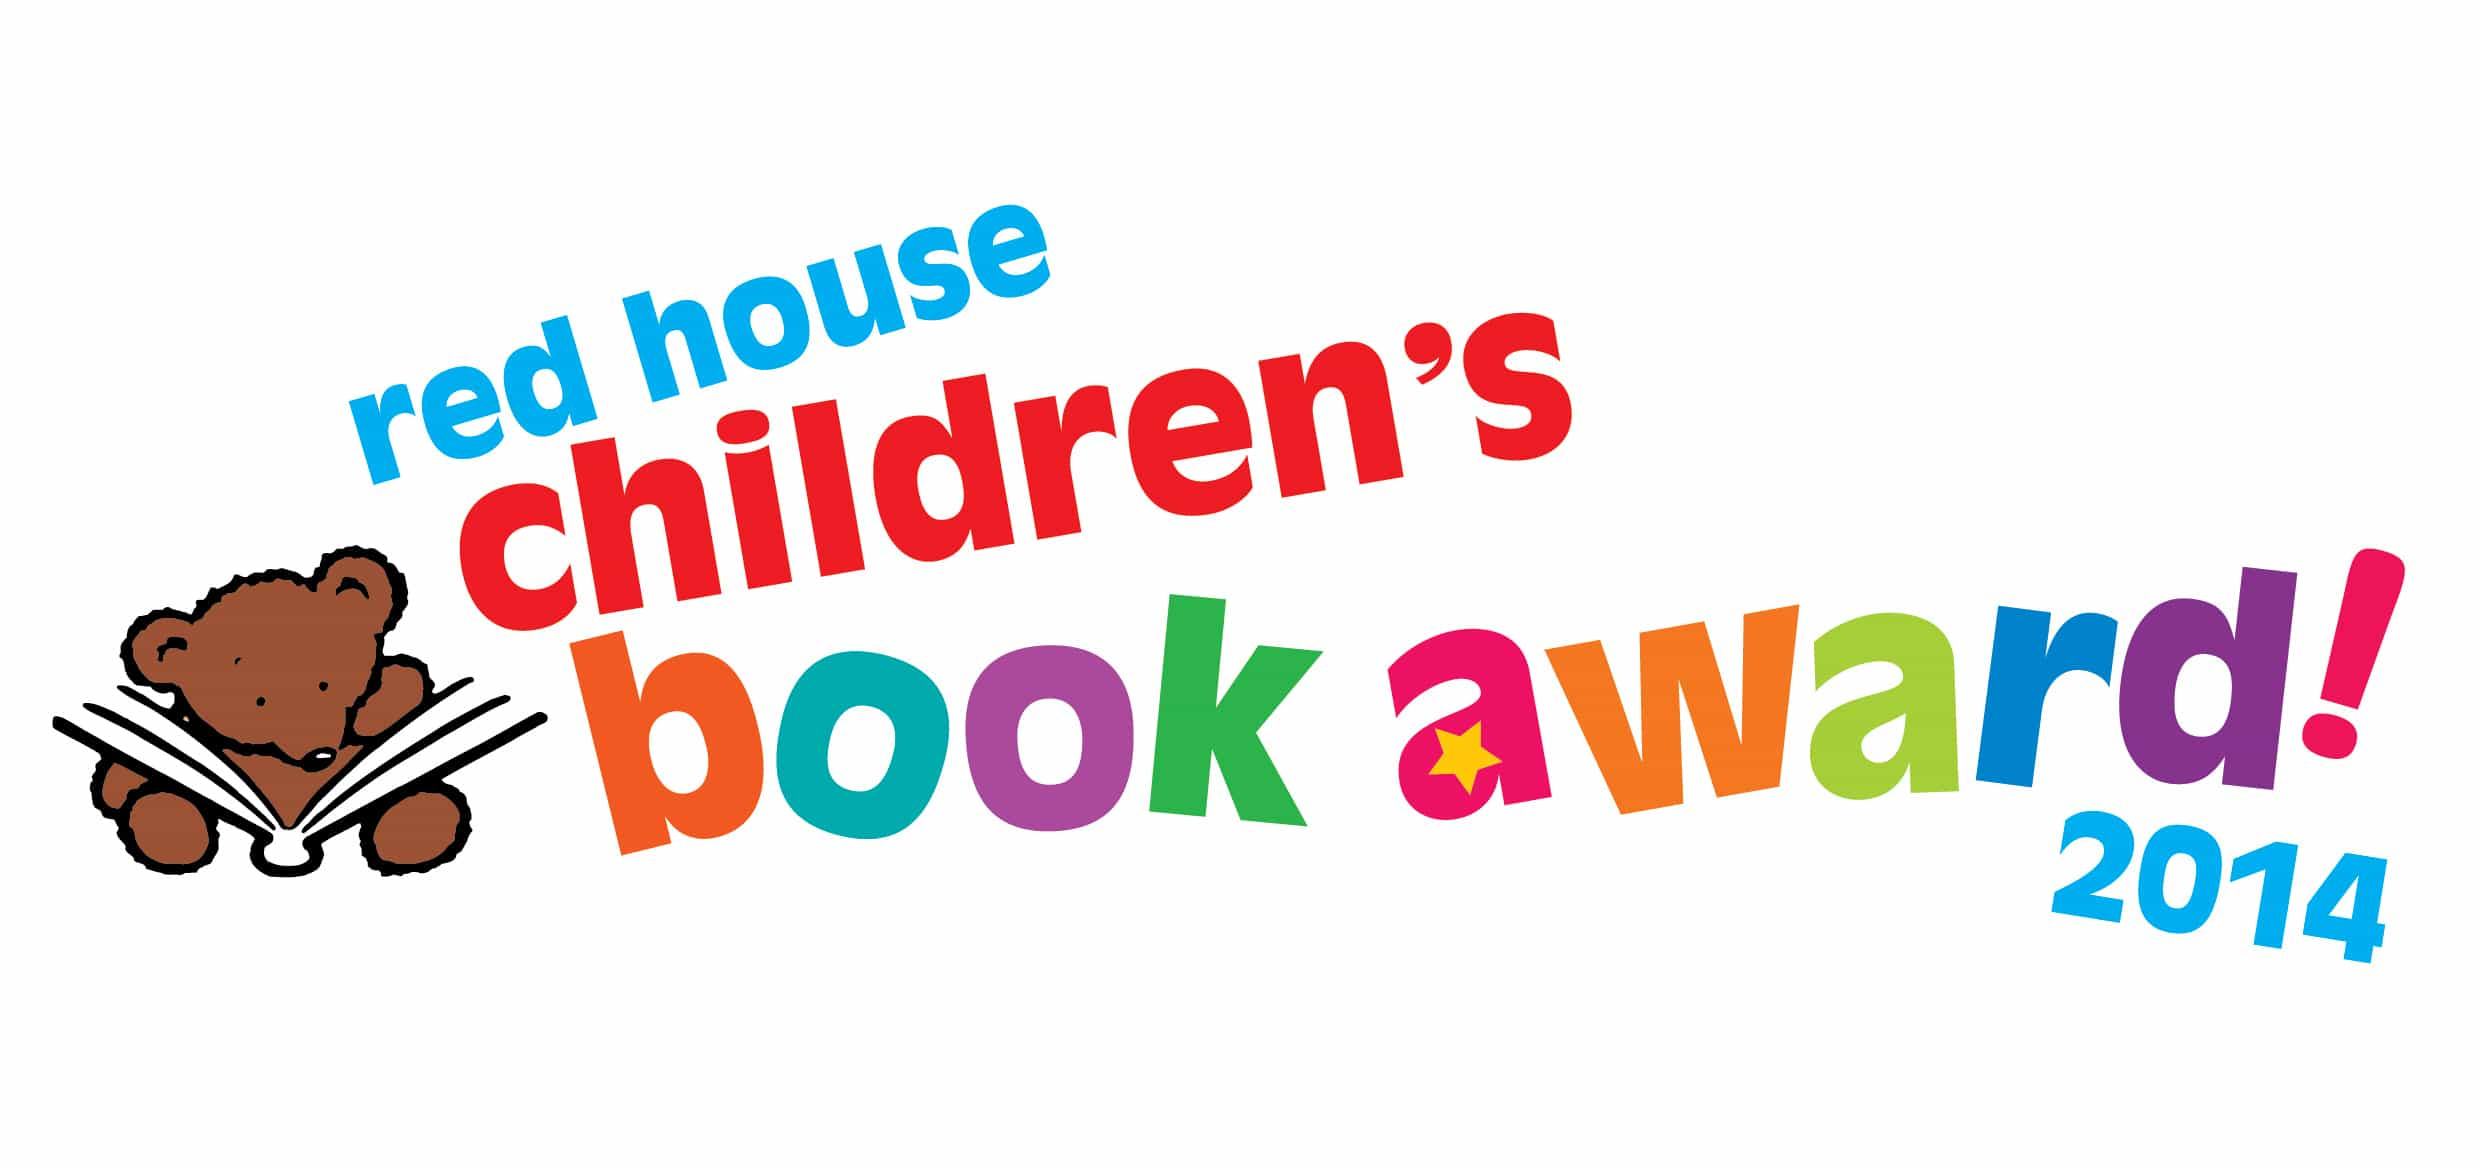 Red House Children's Book Award 2014: Tony Ross and Jeanne